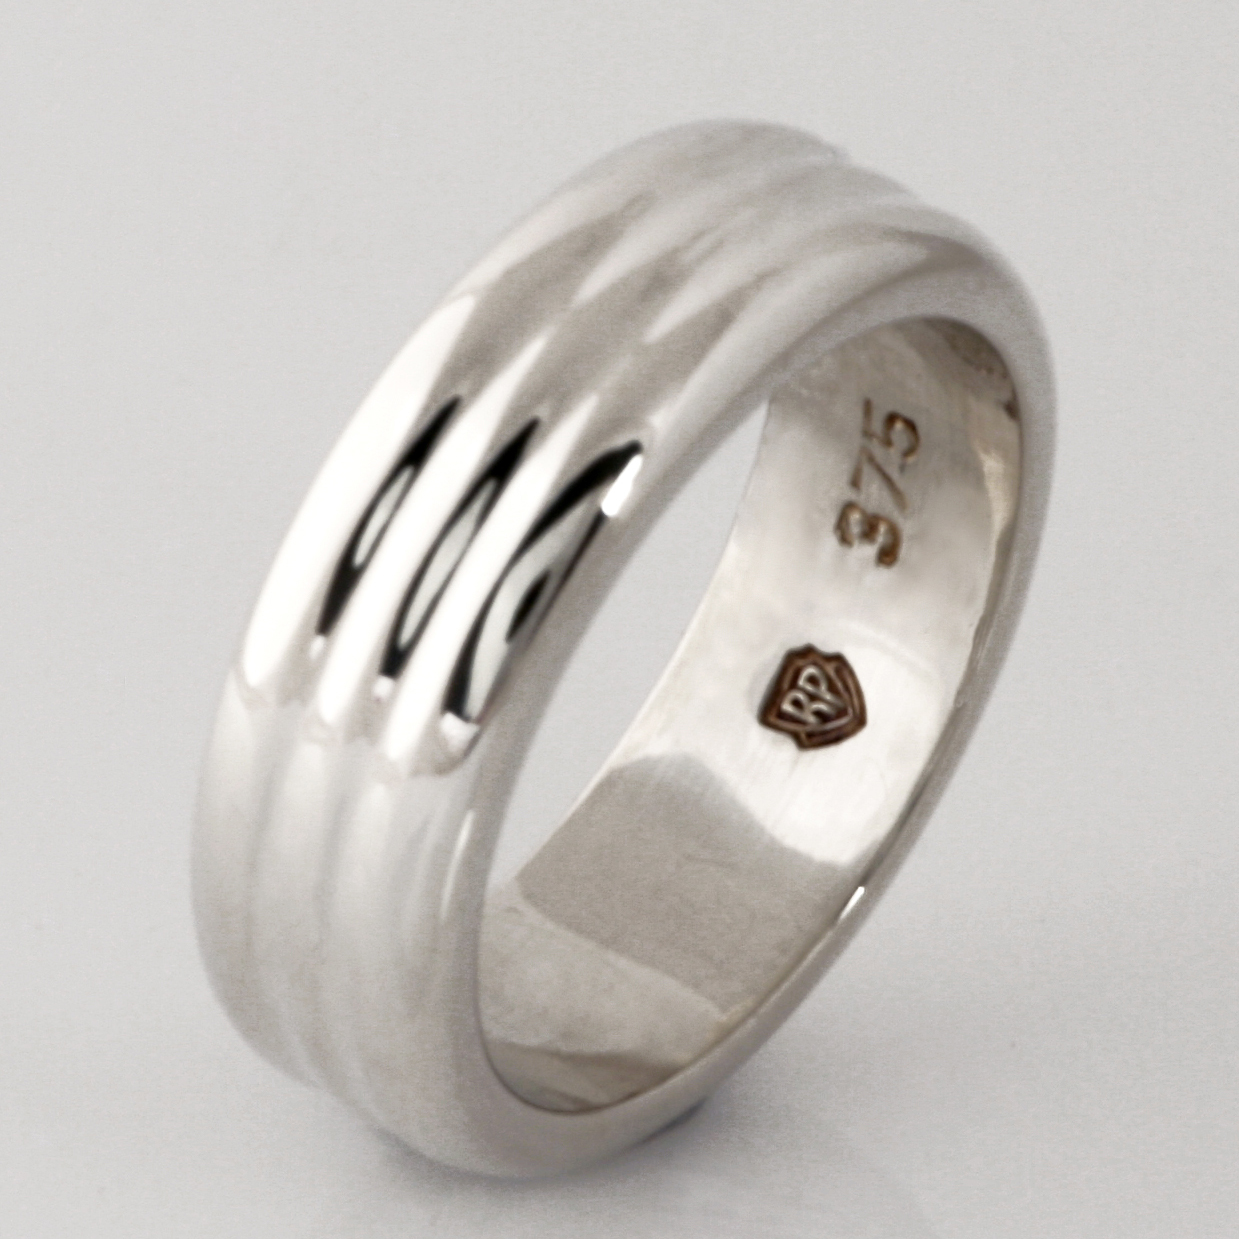 Handmade gents 9ct white gold wedding ring